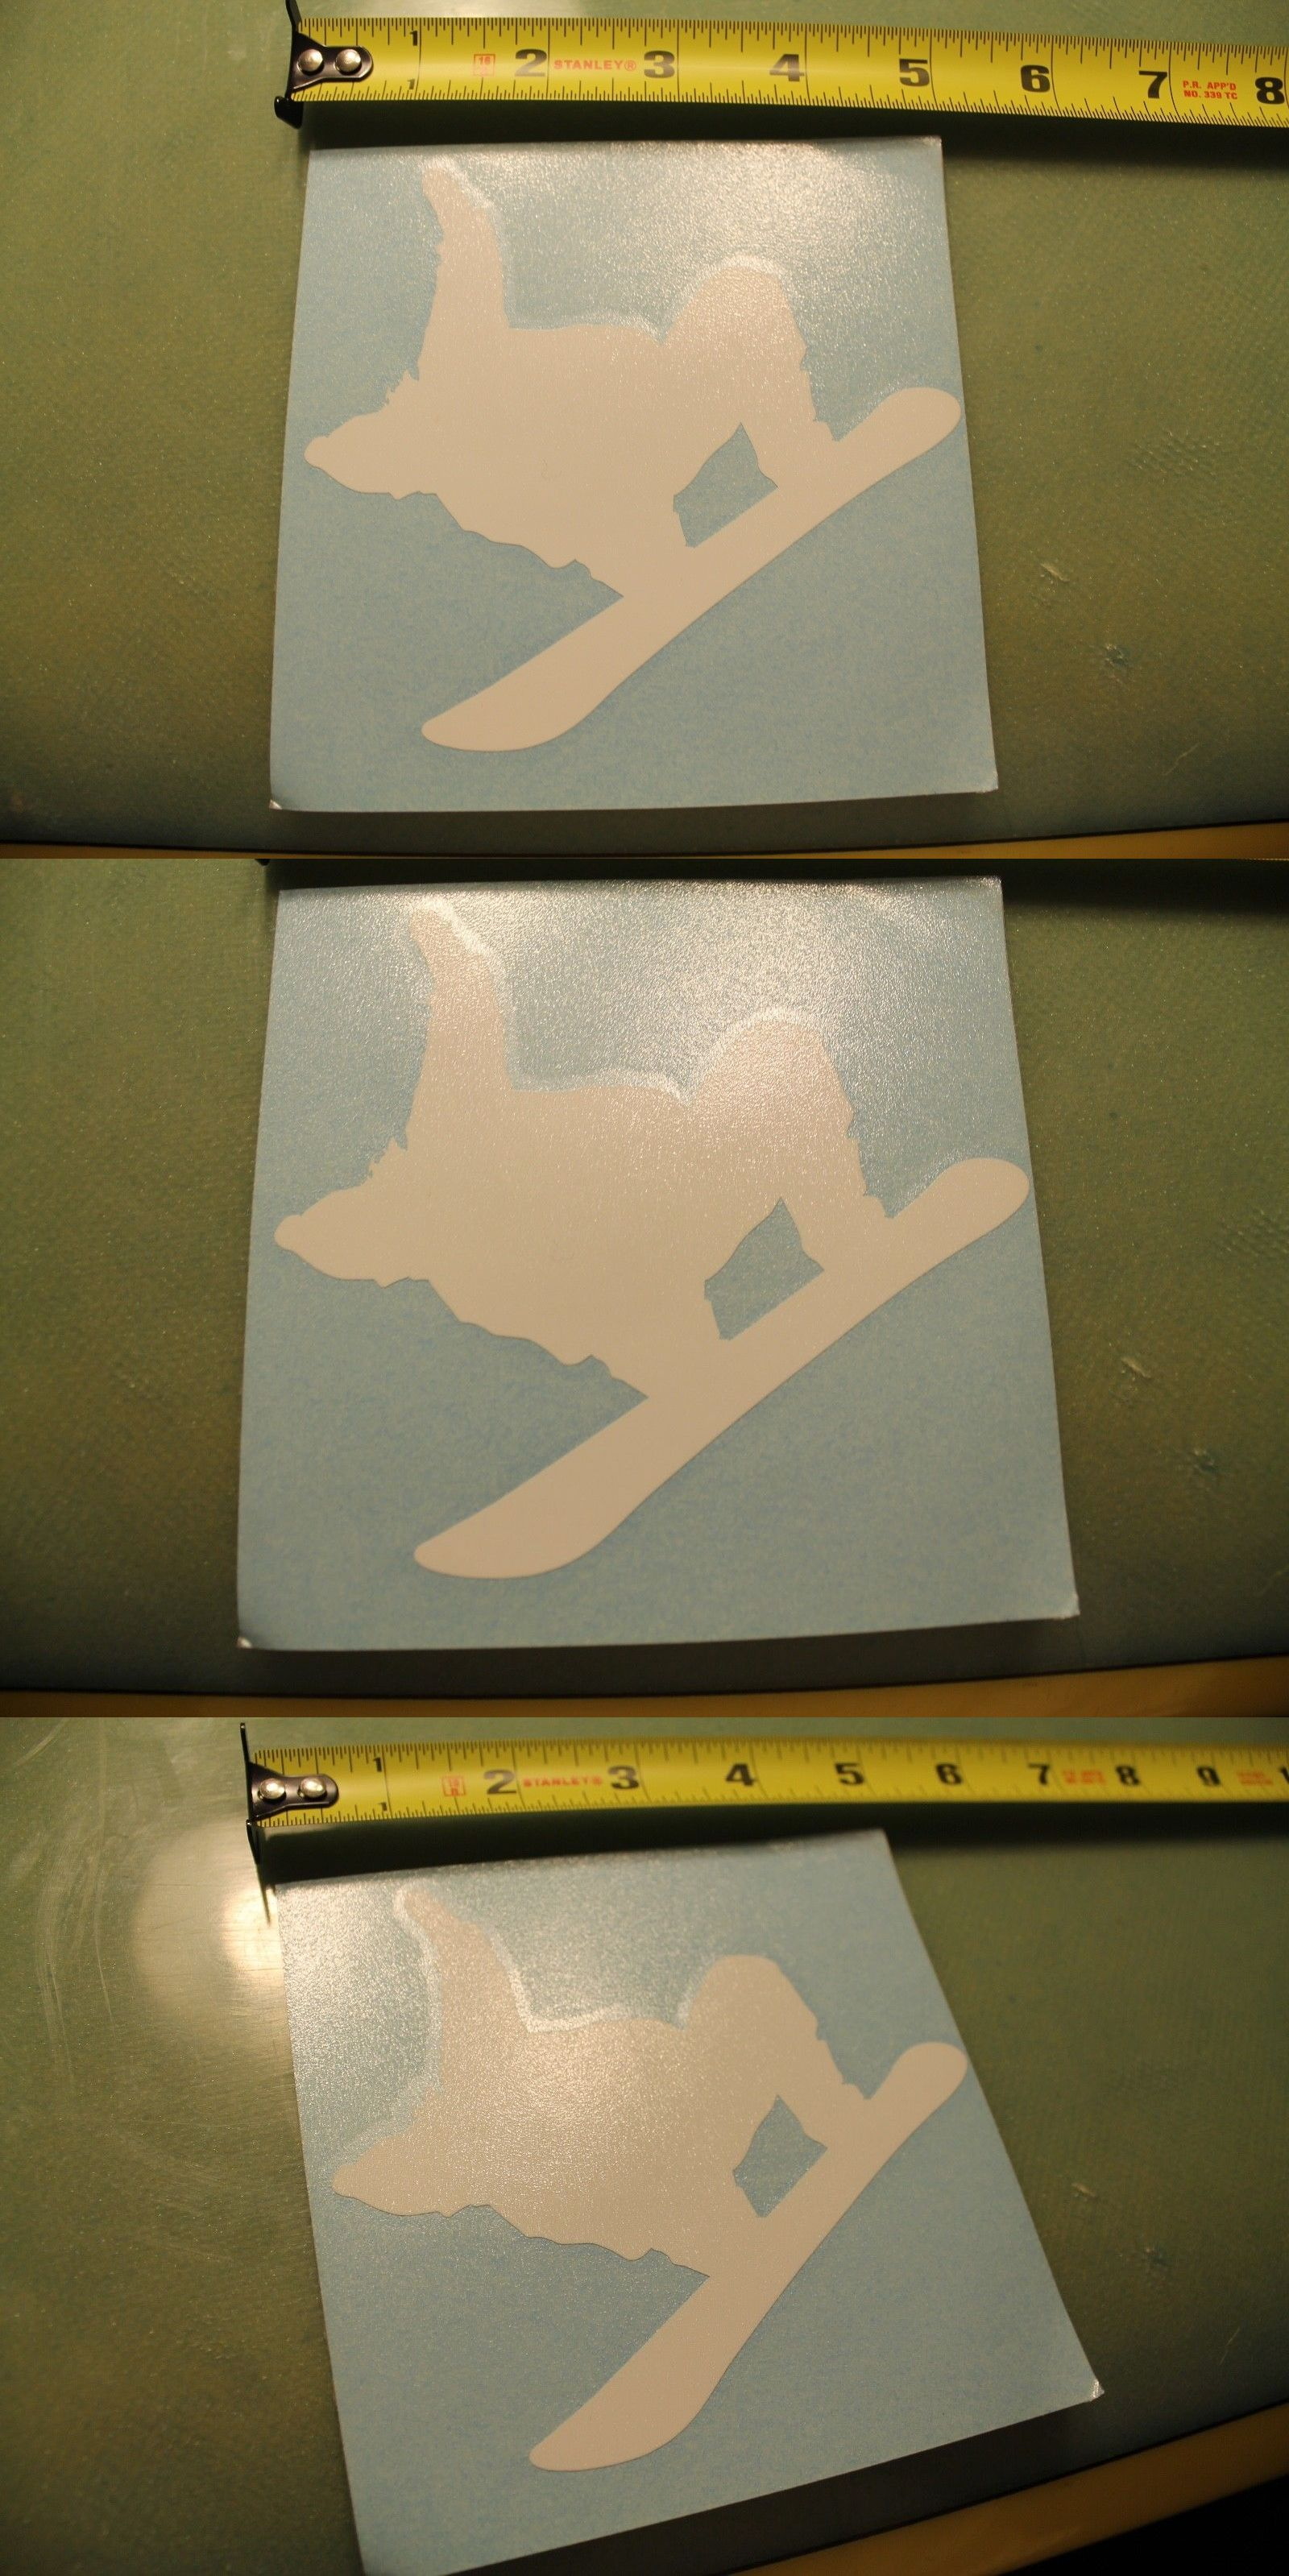 Decals and stickers 159182 snowboard air grab mountain winter 5 vintage ski decal sticker buy it now only 10 on ebay